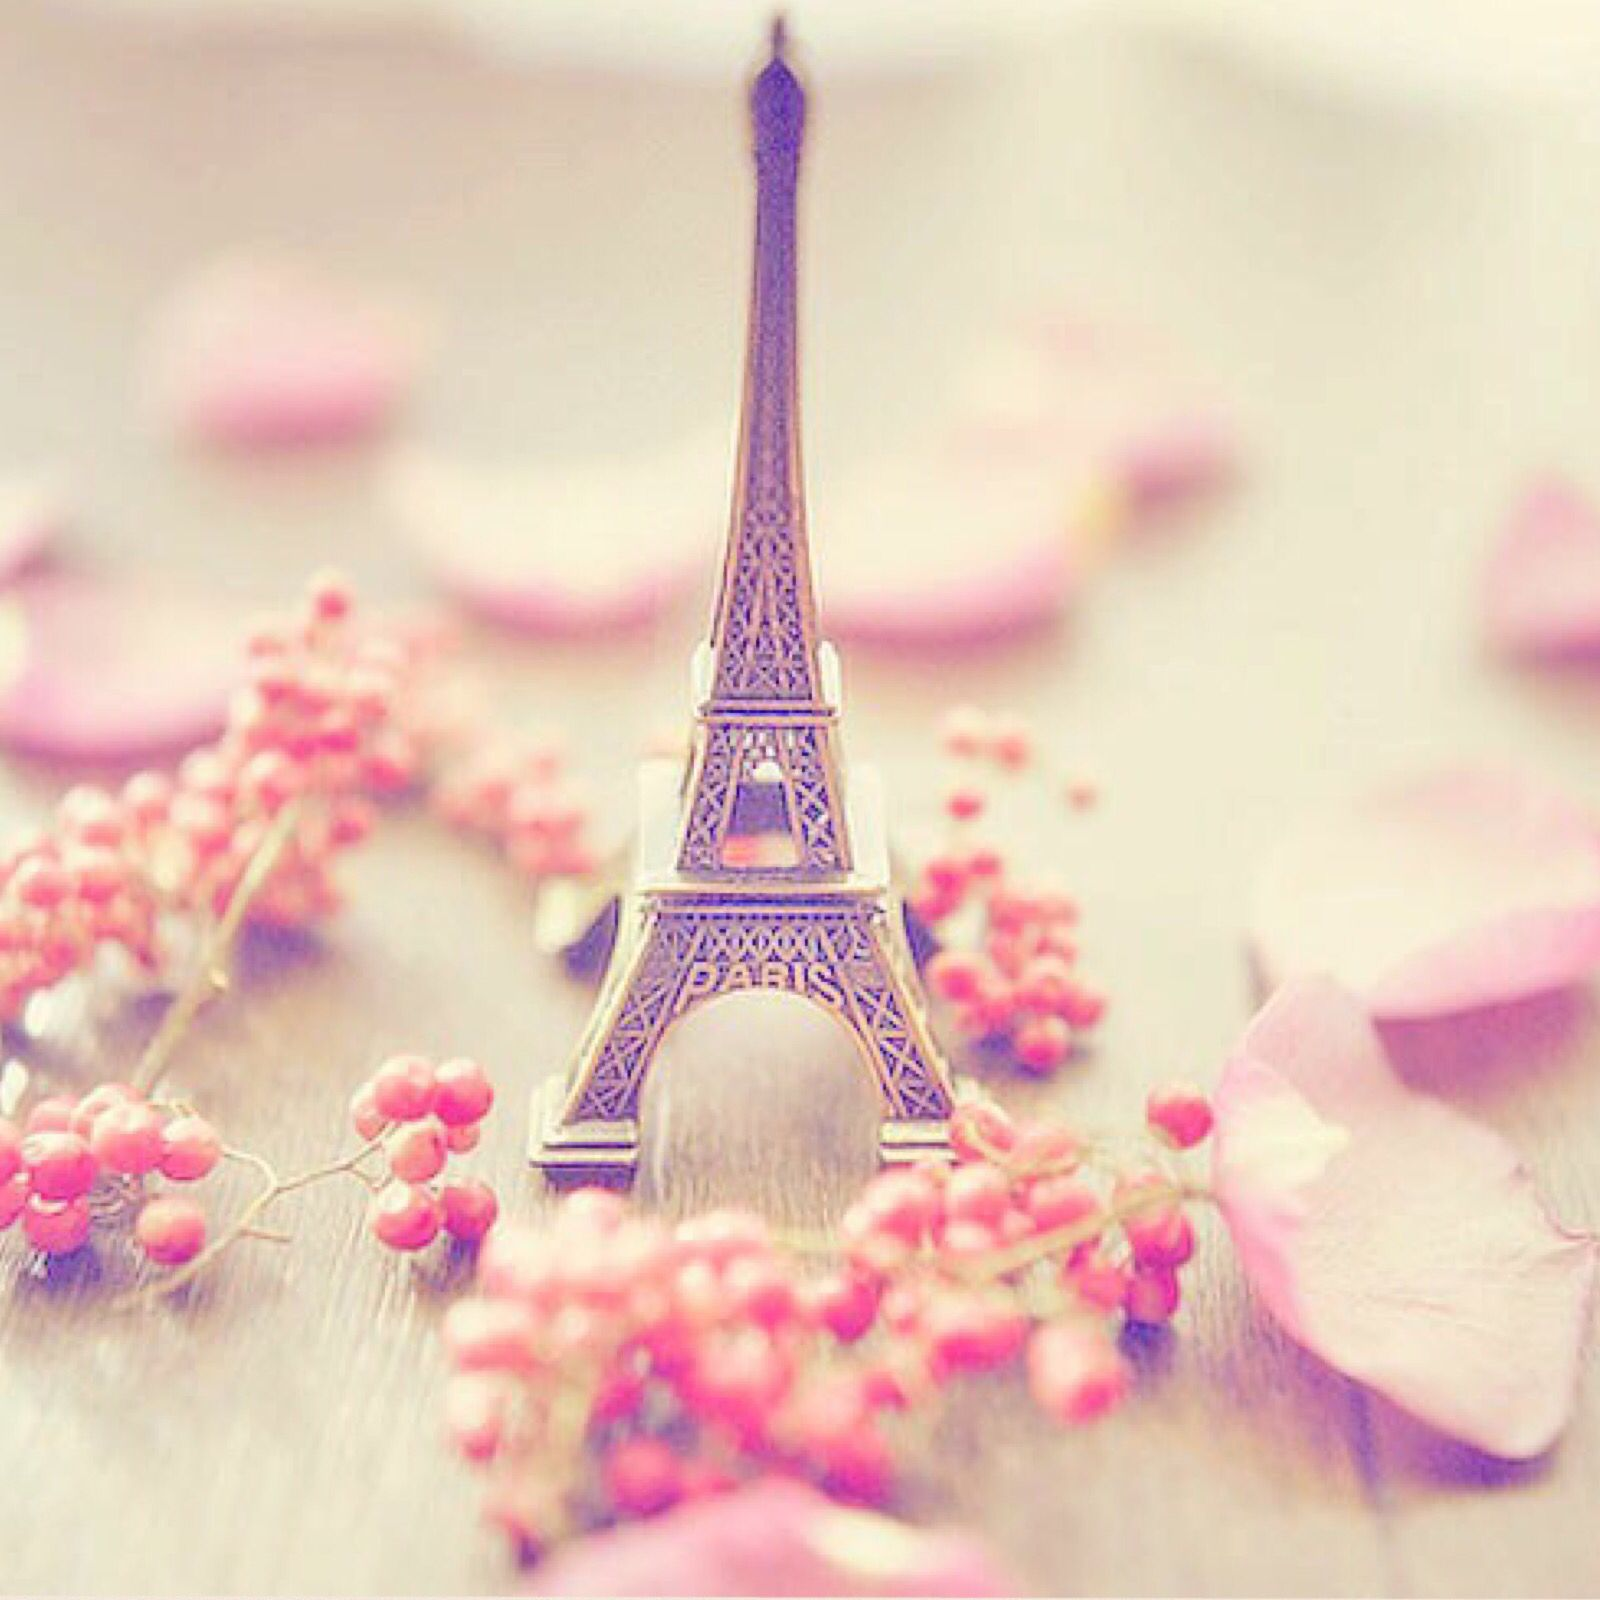 Cute Paris Wallpaper Wallpaper Marieghansen Paris Eiffel Tower Paris Love Paris Wallpaper